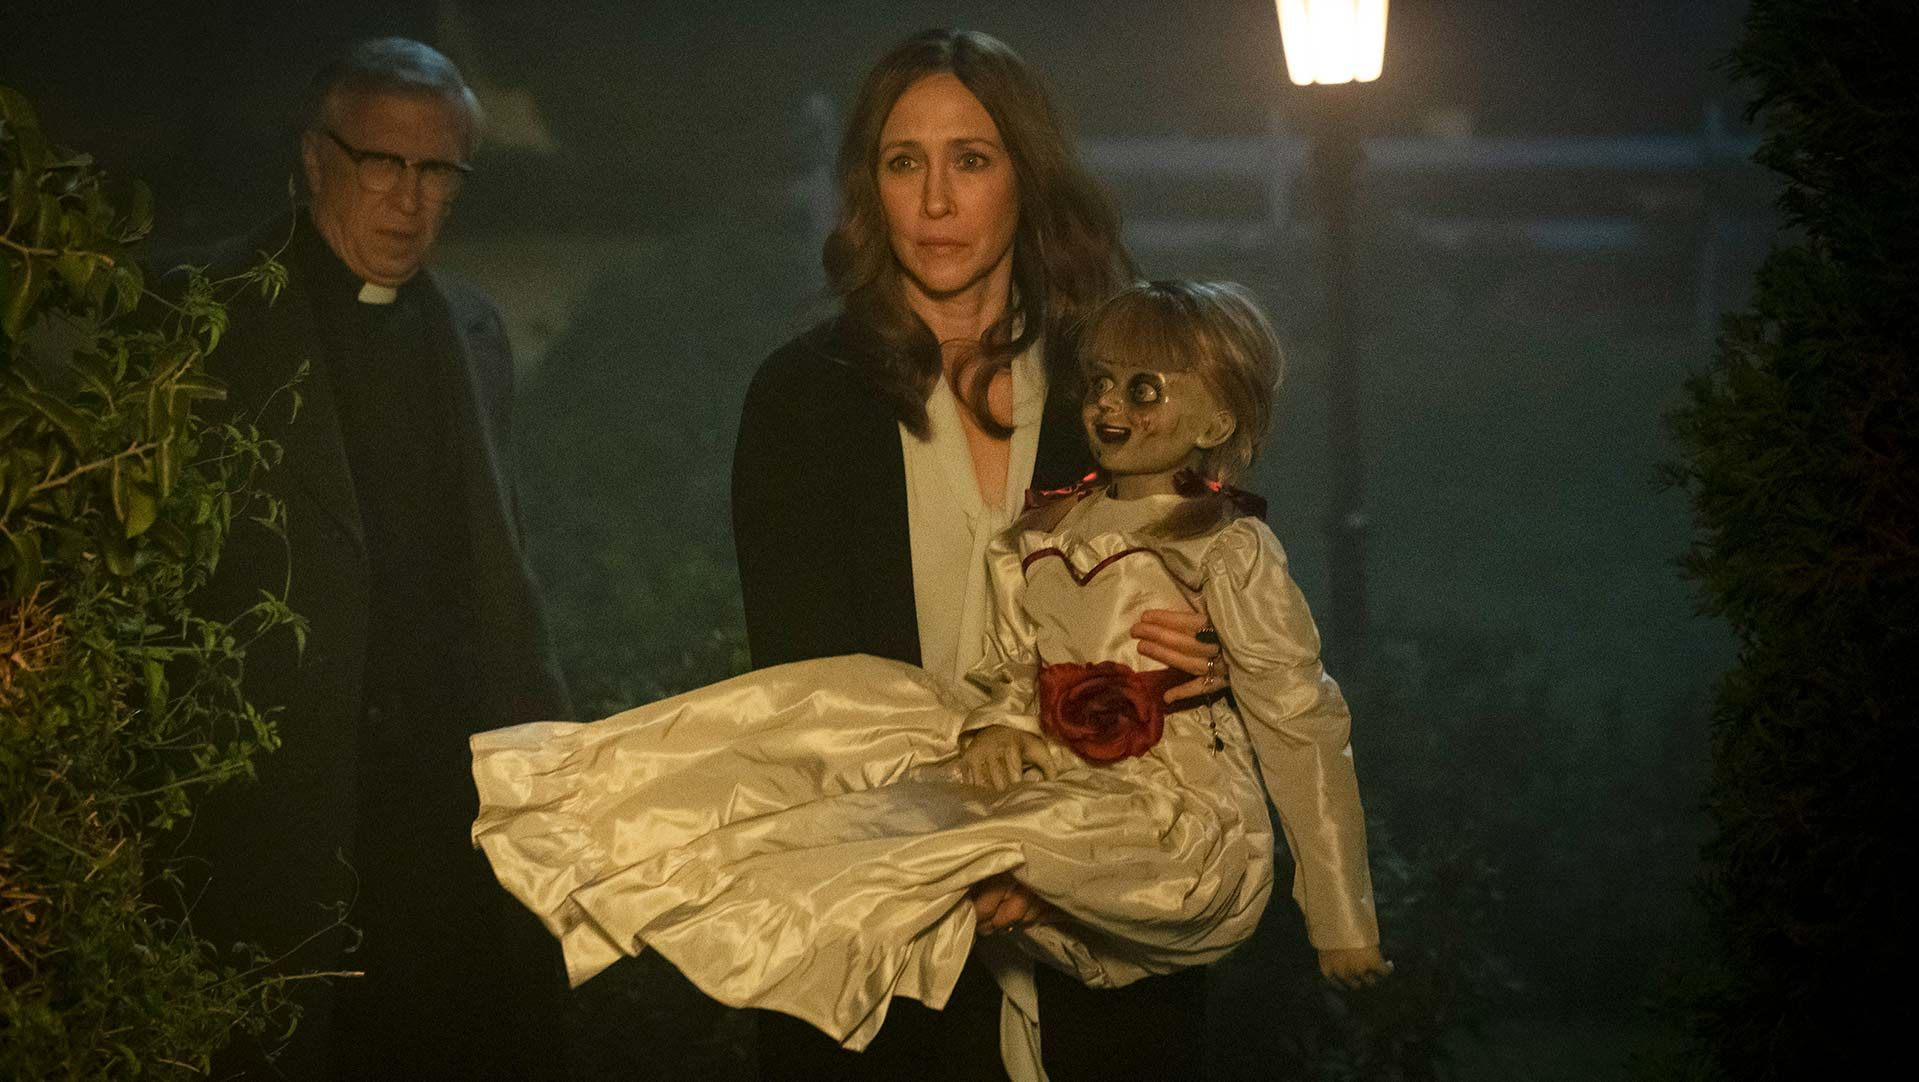 The Conjuring Movies in Order: Annabelle Comes Home